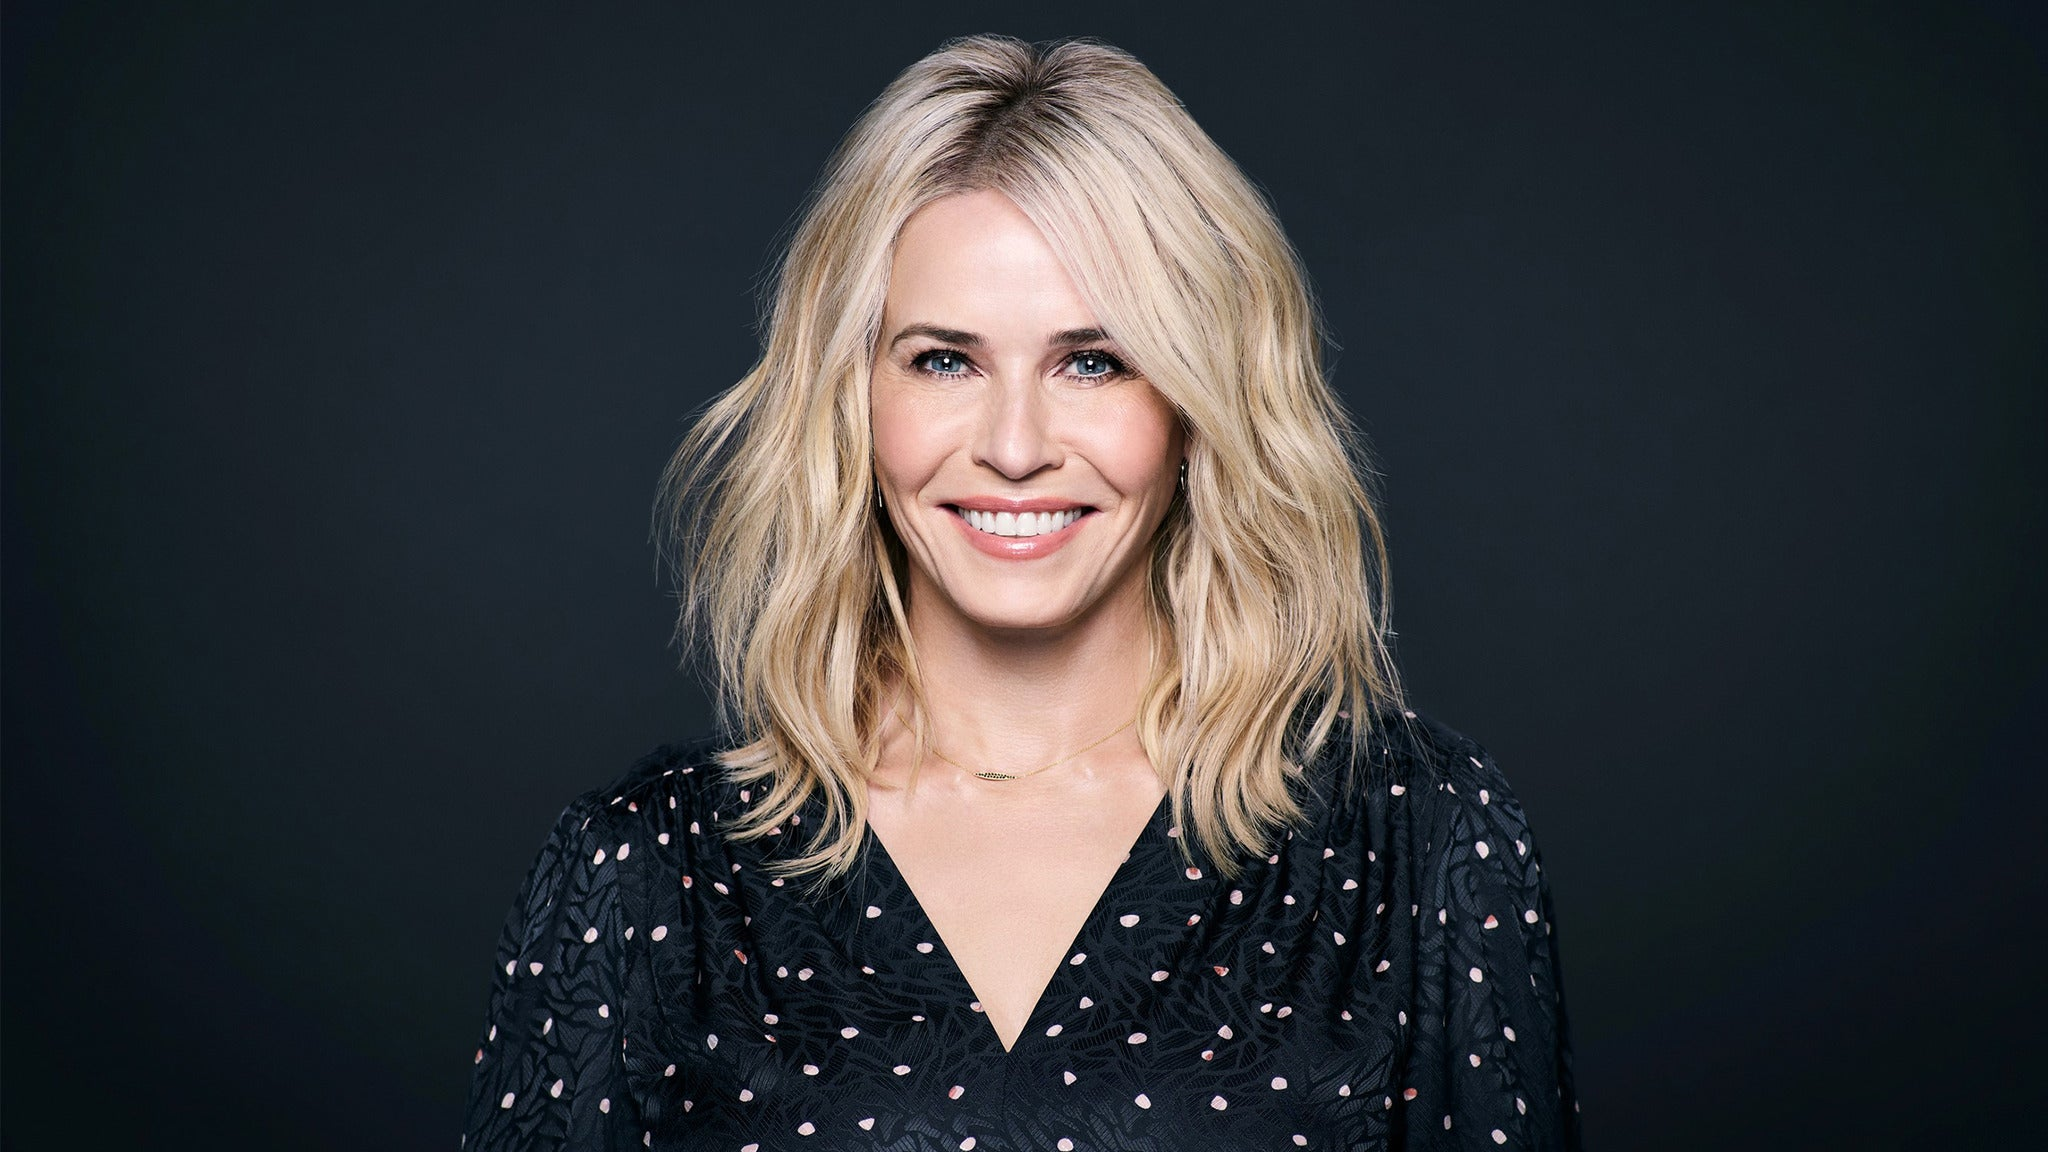 Life Will Be the Death of Me: Chelsea Handler's Sit-Down Comedy Tour